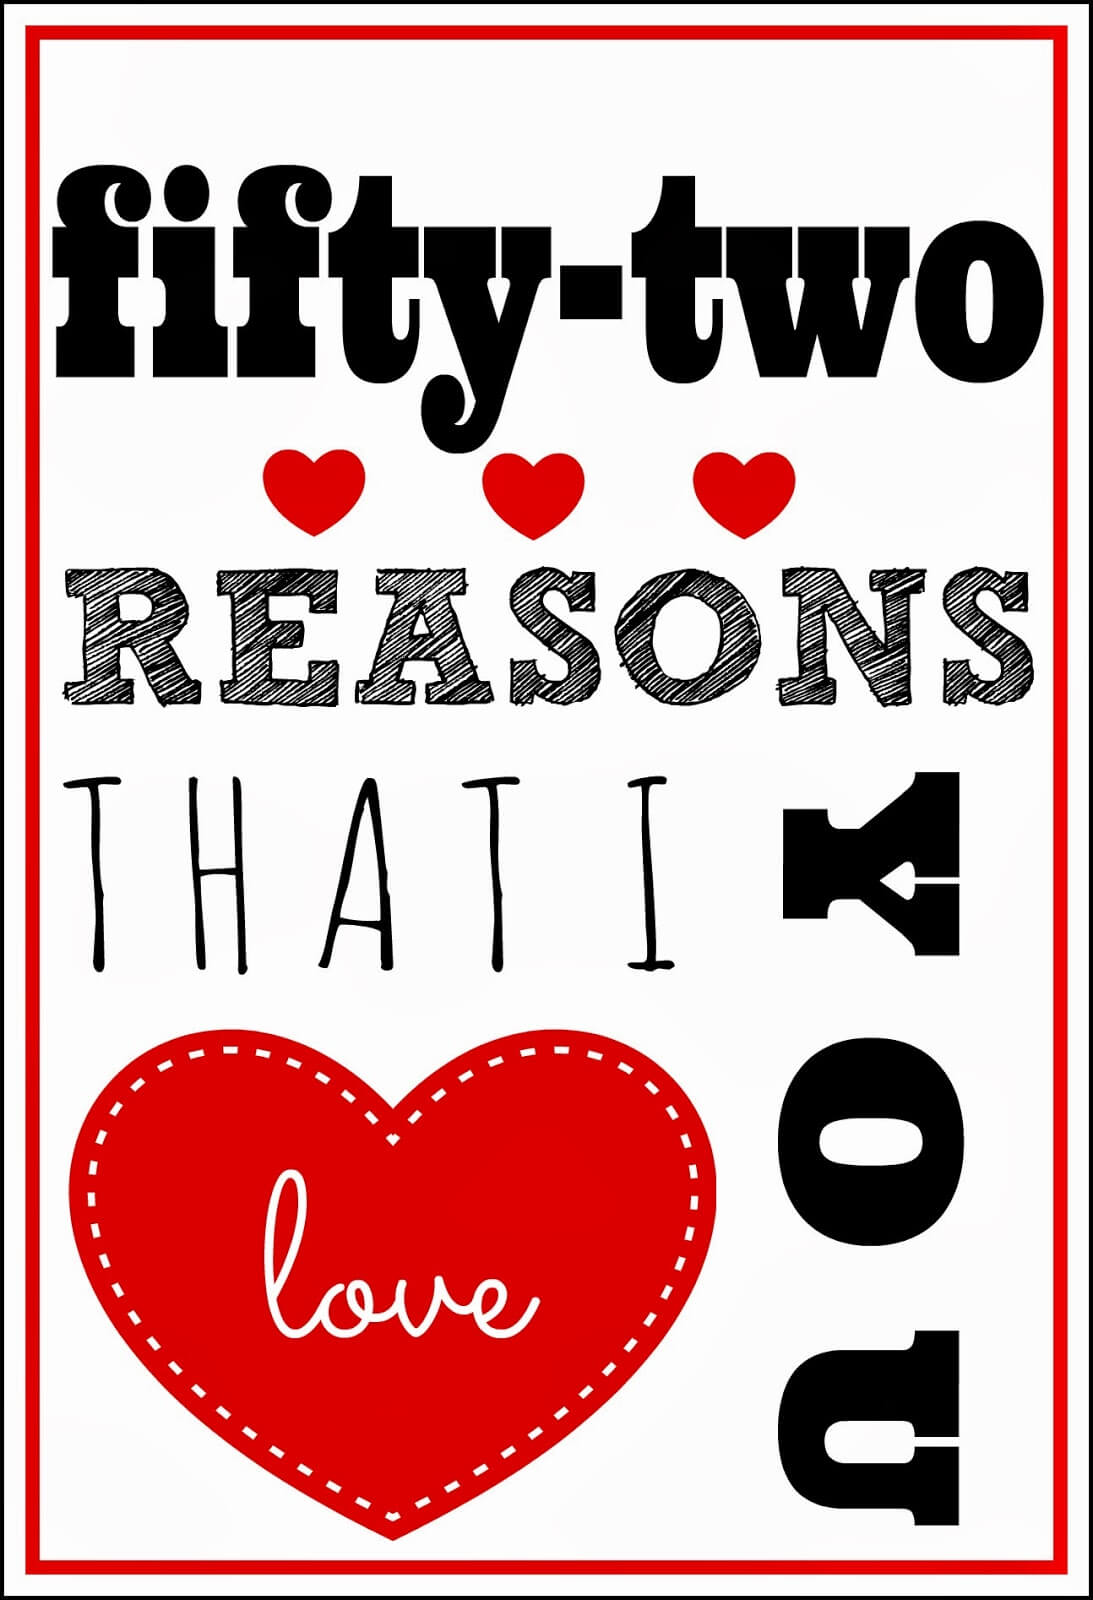 52 Reasons I Love You Template Free ] - You Will Get A With 52 Reasons Why I Love You Cards Templates